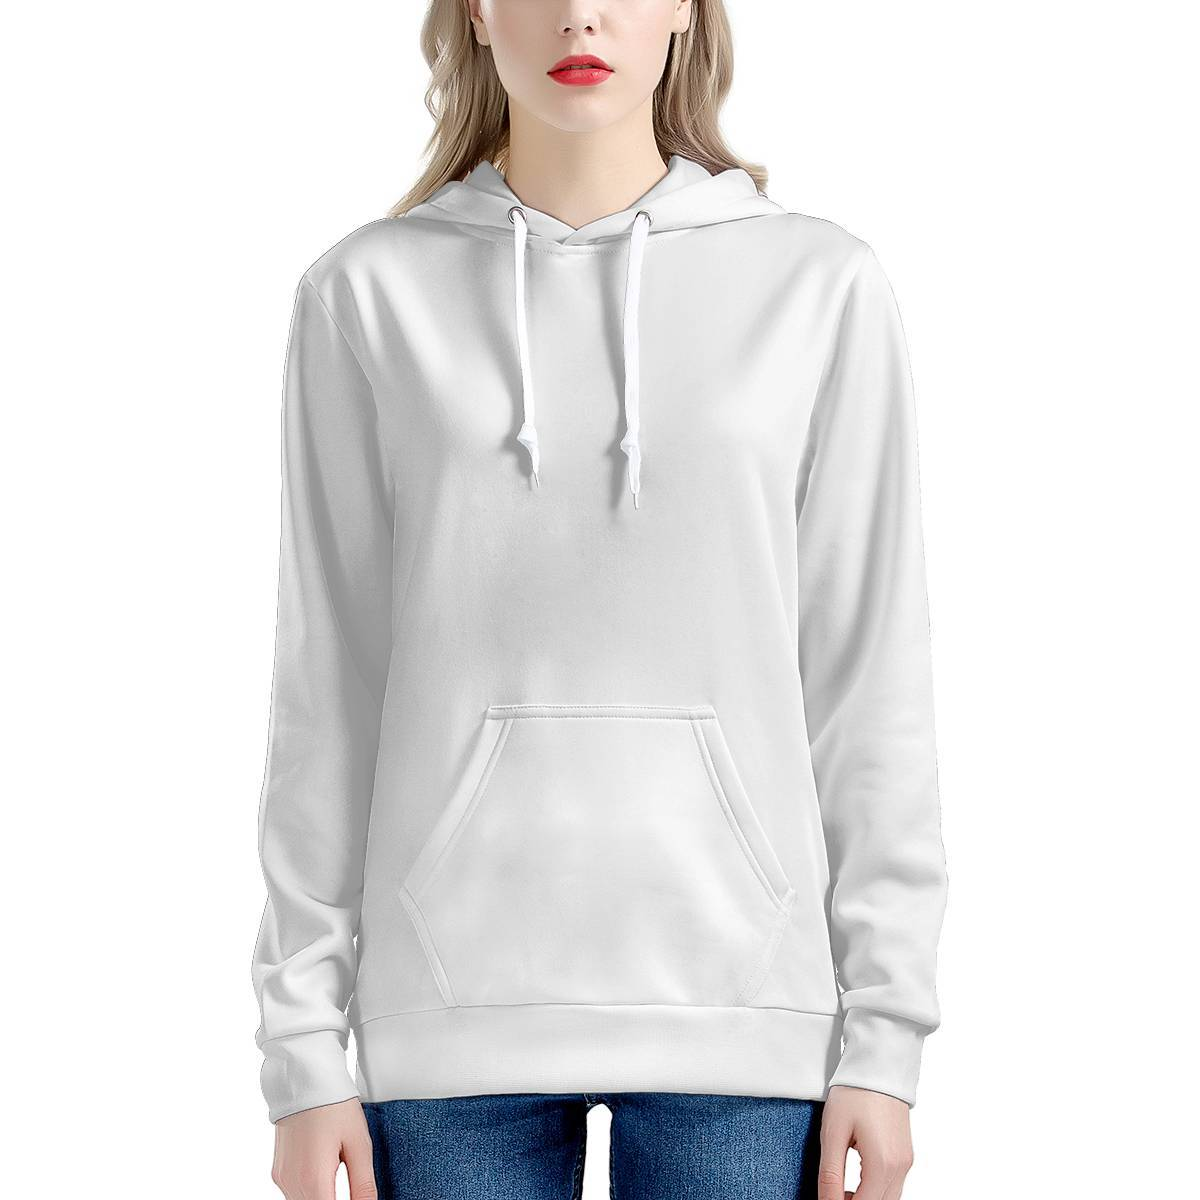 All Over Print Sublimated - Women's All Over Print Hoodie